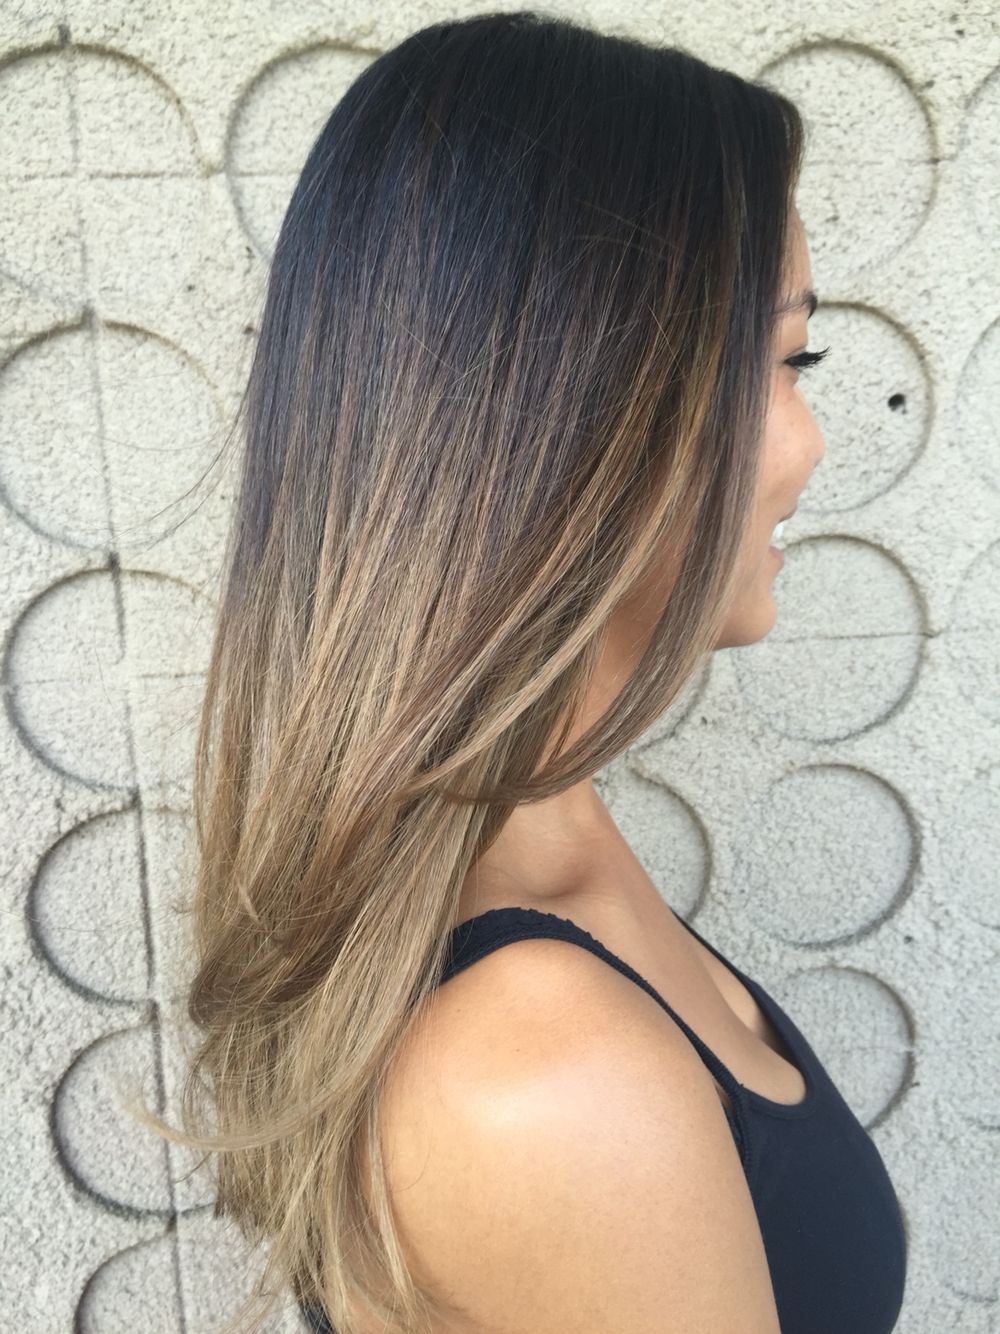 Perfect blended Sombre  Hair by: Shanon conte